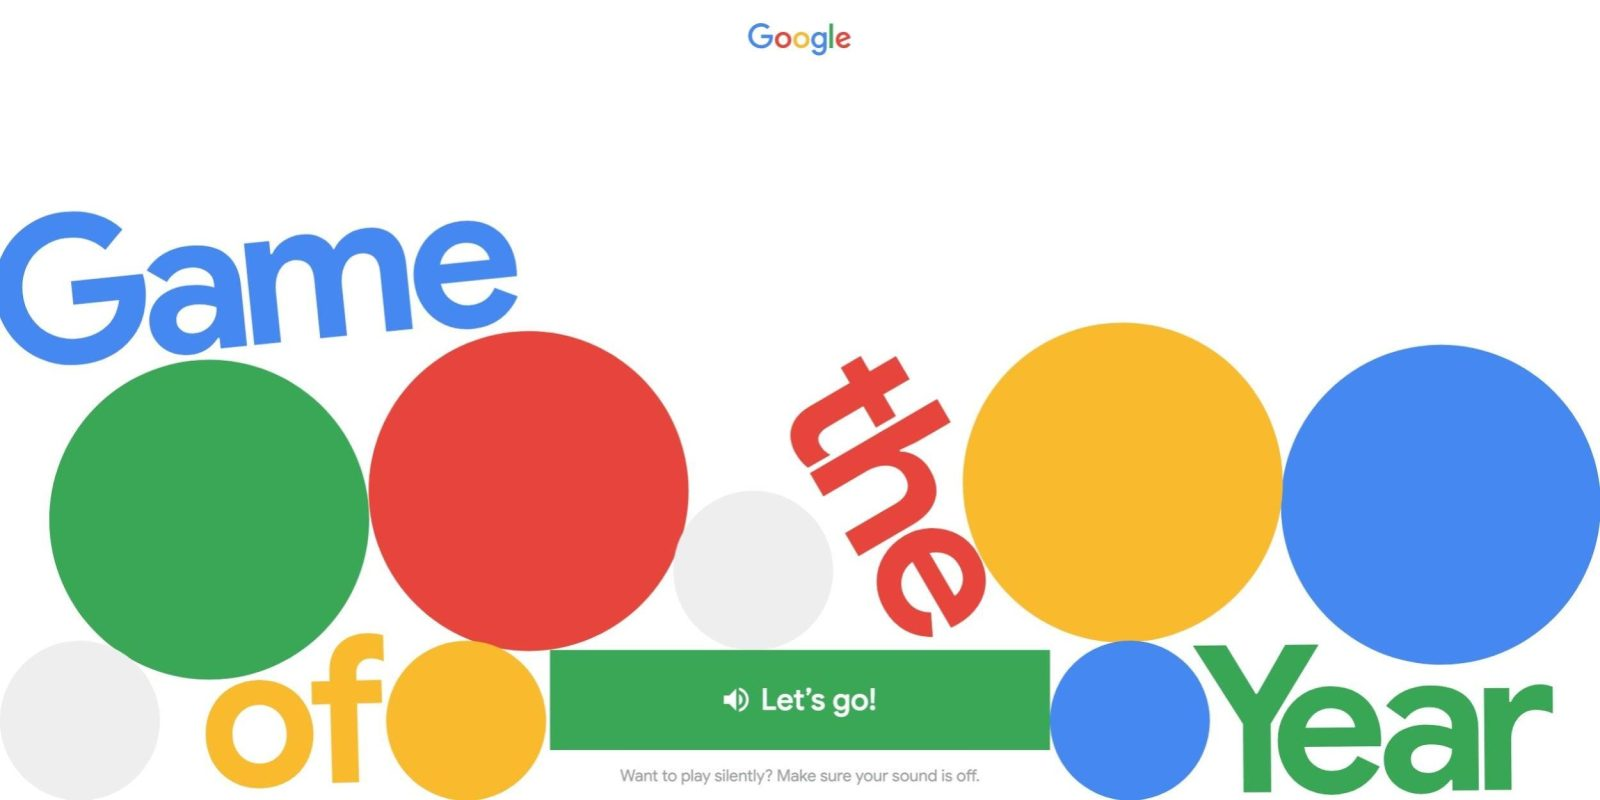 Google releases fun 'Game of the Year' that quizzes you on